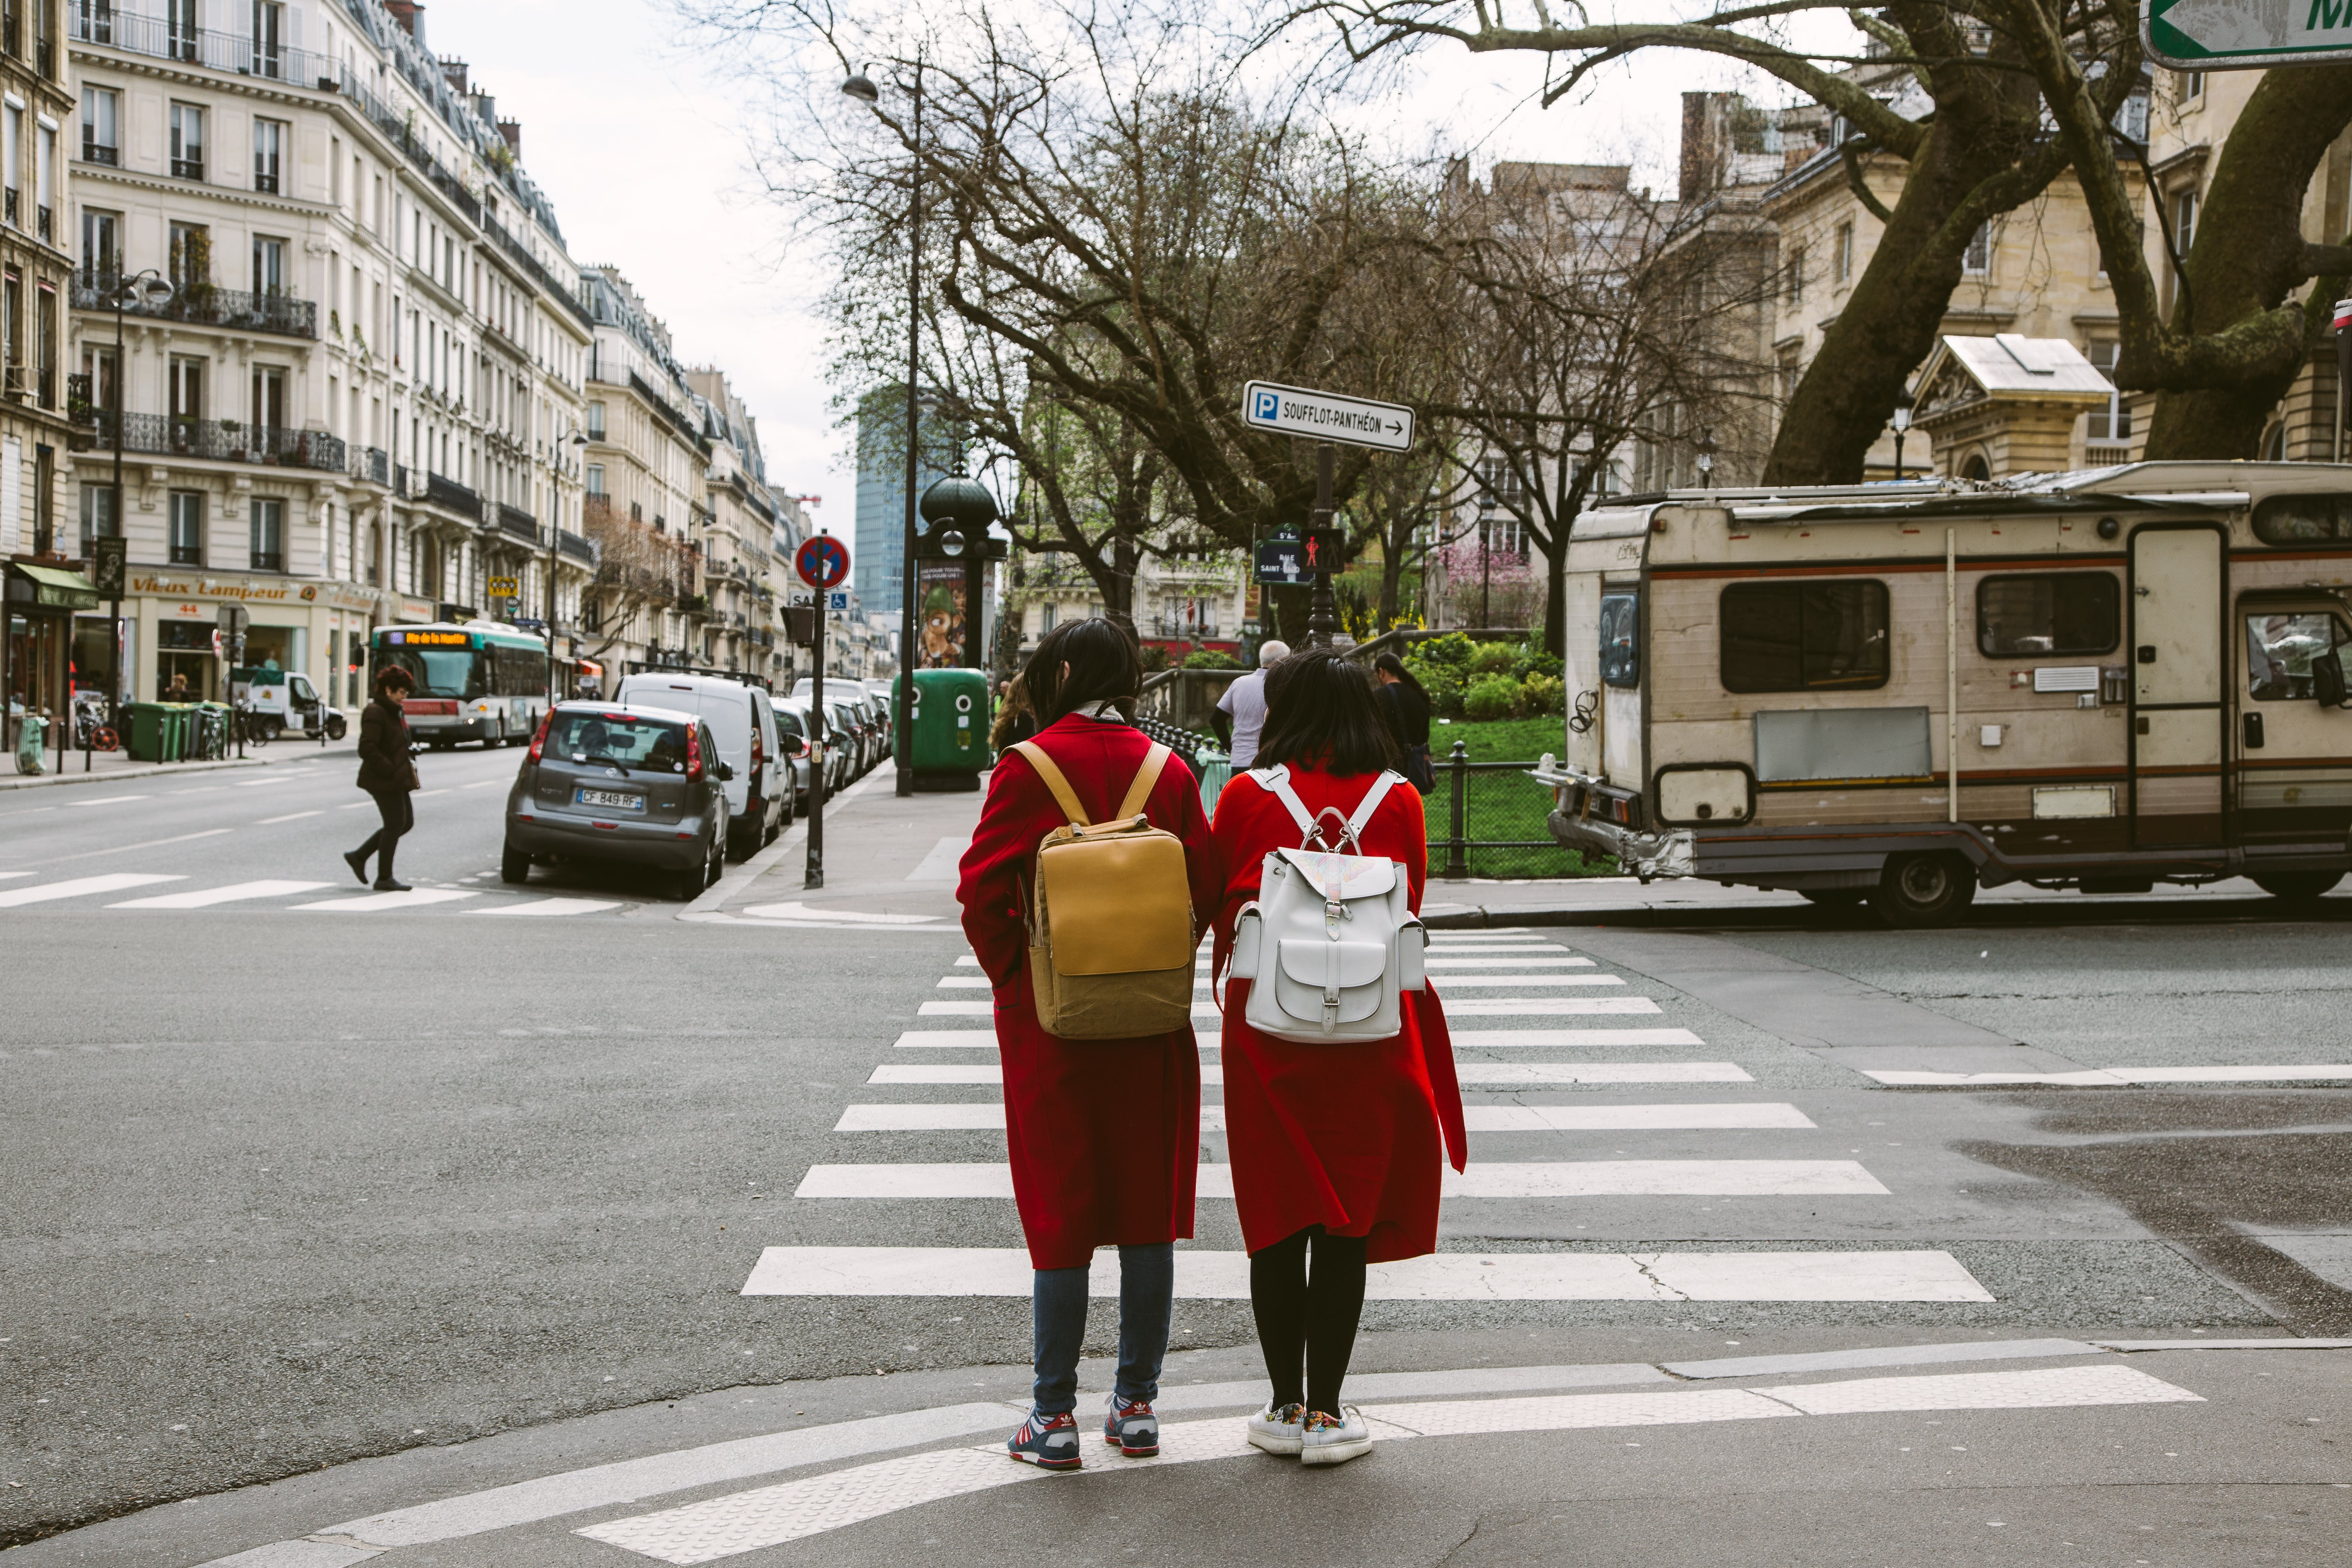 Two Women Wearing Red Coats With Backpacks